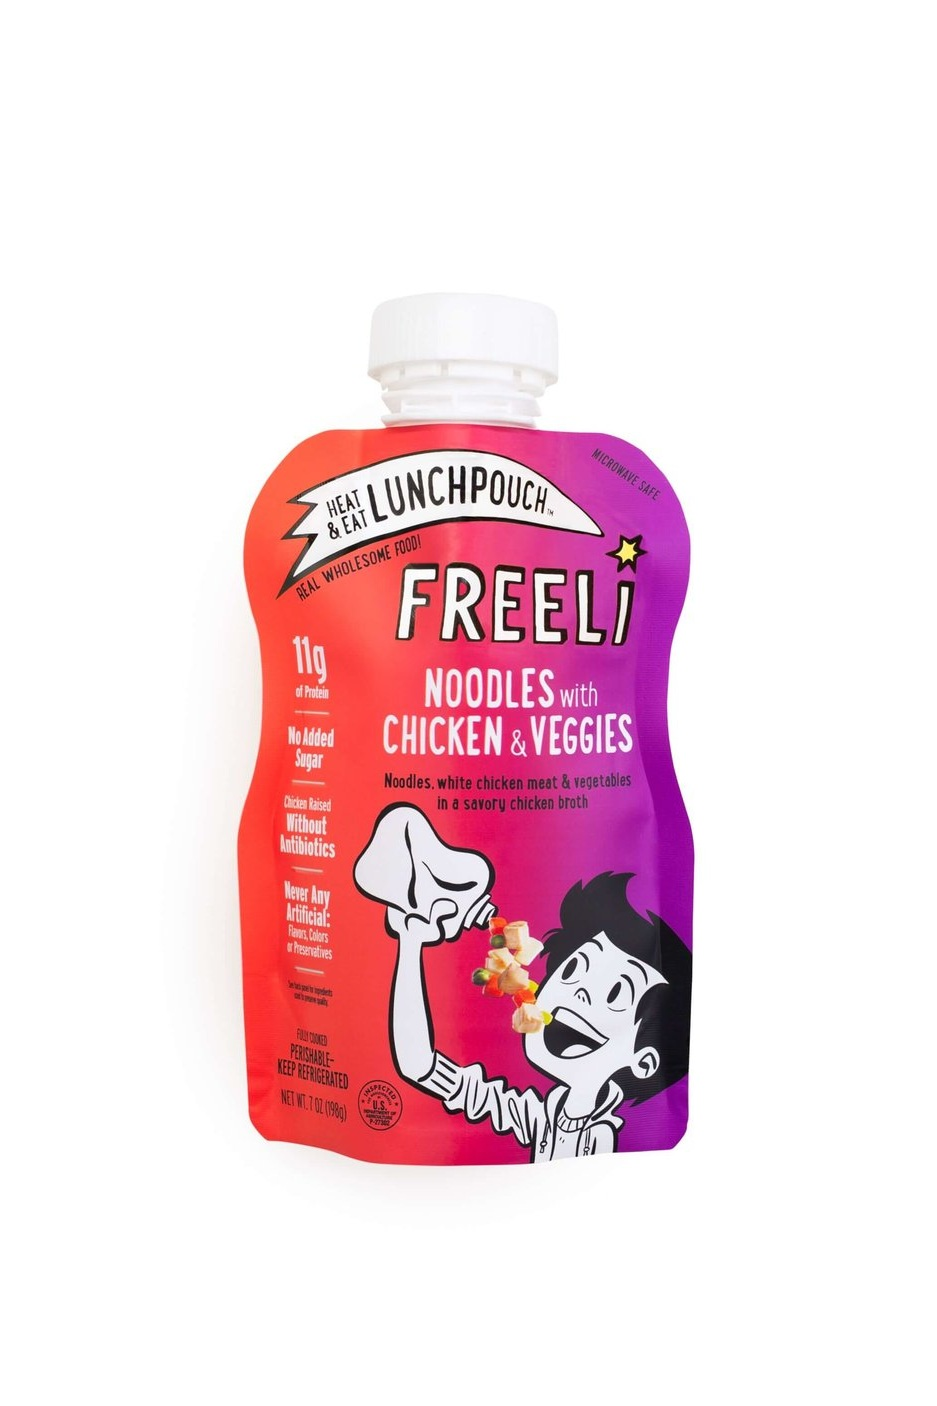 Freeli Foods | Lunchpouch | Noodles with chicken and veggies | Product.jpeg